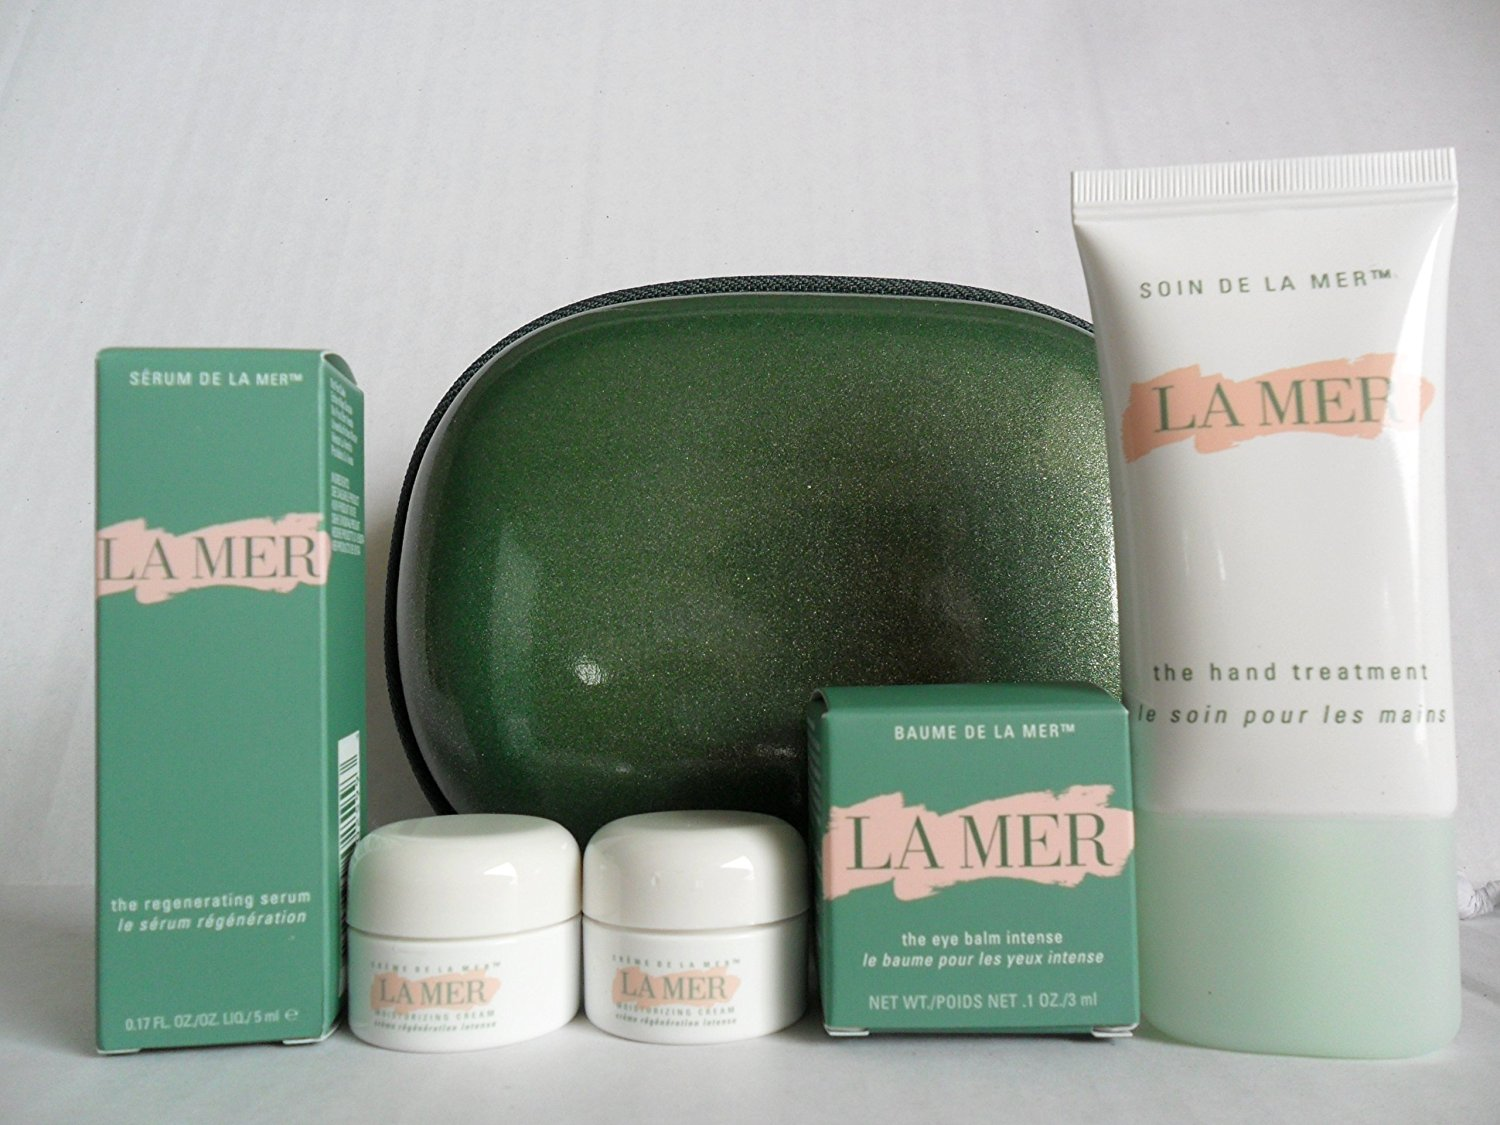 La Mer Gift Set: The Moisturizing Cream .1 oz x 2 jar = .24 oz + The Eye Concentrate .1 oz / 3ml + The Regenerating Serum .17 oz / 5ml + The Hand Treatment 1 oz / 30ml Tube + Cosmetic Clam Shell Case. This is Promotional Sample Size Set.